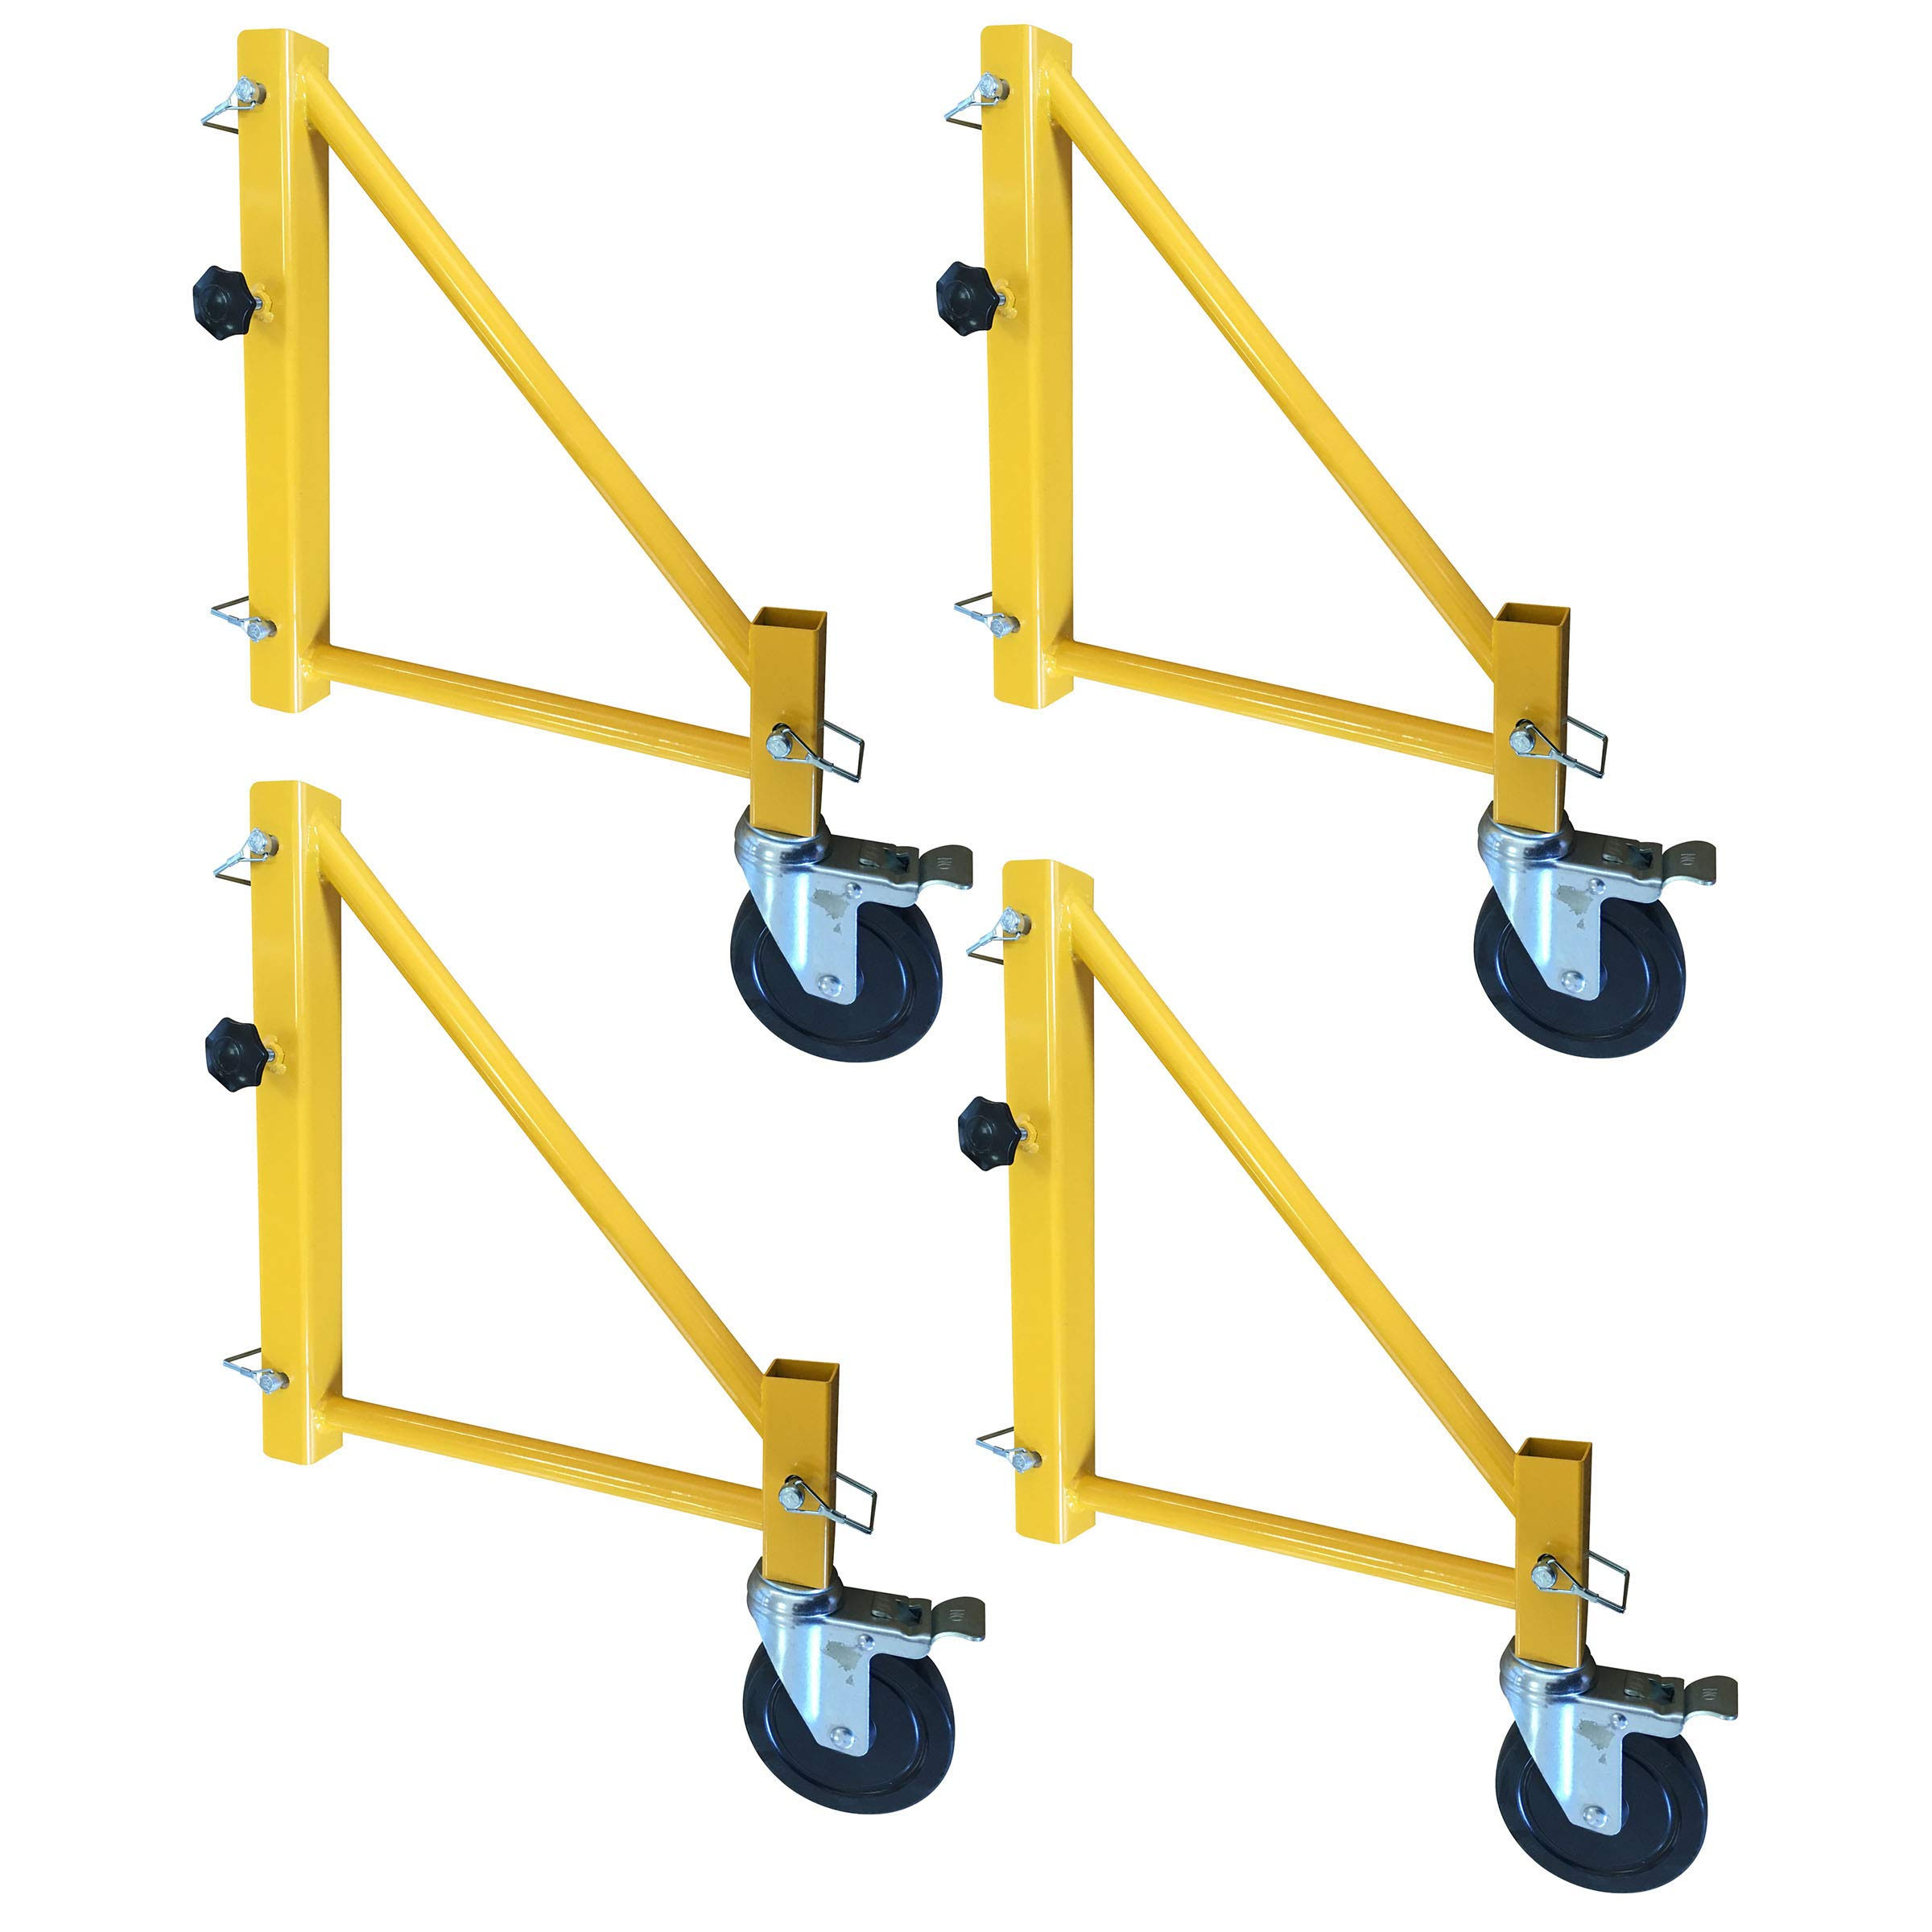 Pro-Series 18 inch Scaffolding Outriggers with Casters - 4 Piece Set by Pro-series